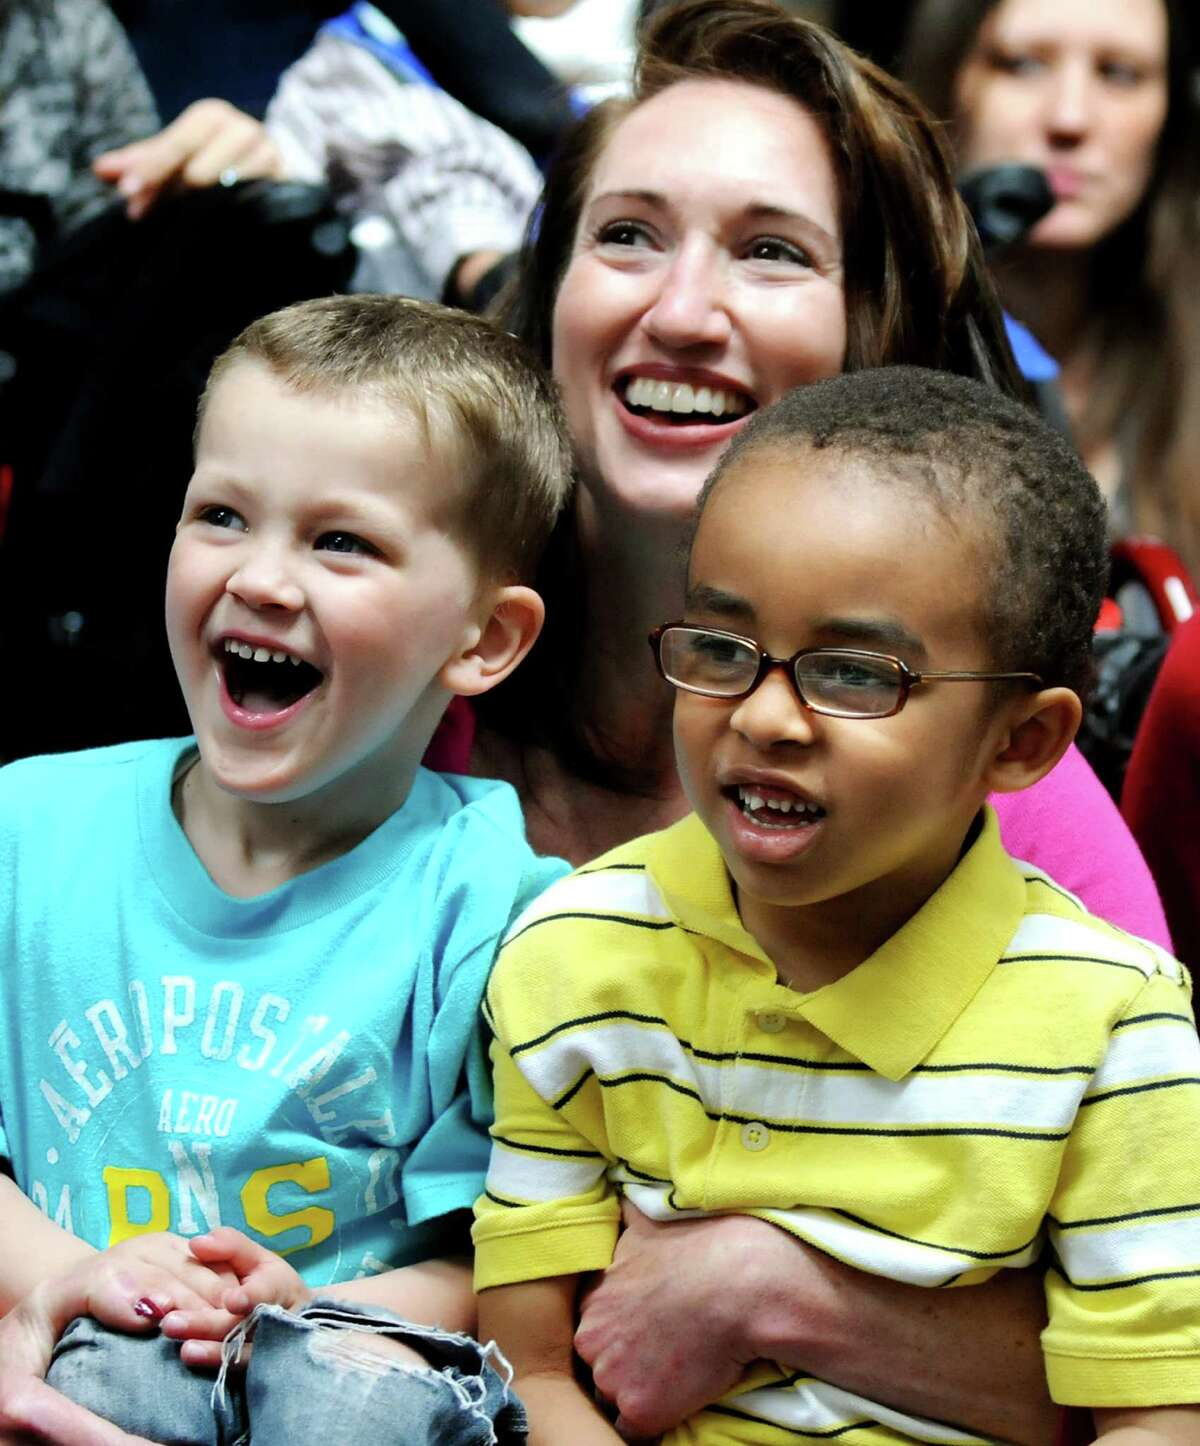 Robert Smart, 3, left, and Evin Witt, 4, right, laugh with Bonnie White, a speech pathologist, as they watch Ringling Bros. and Barnum & Bailey clowns perform on Wednesday, April 25, 2012, at the Center for Disability Services in Albany, N.Y. (Cindy Schultz / Times Union)